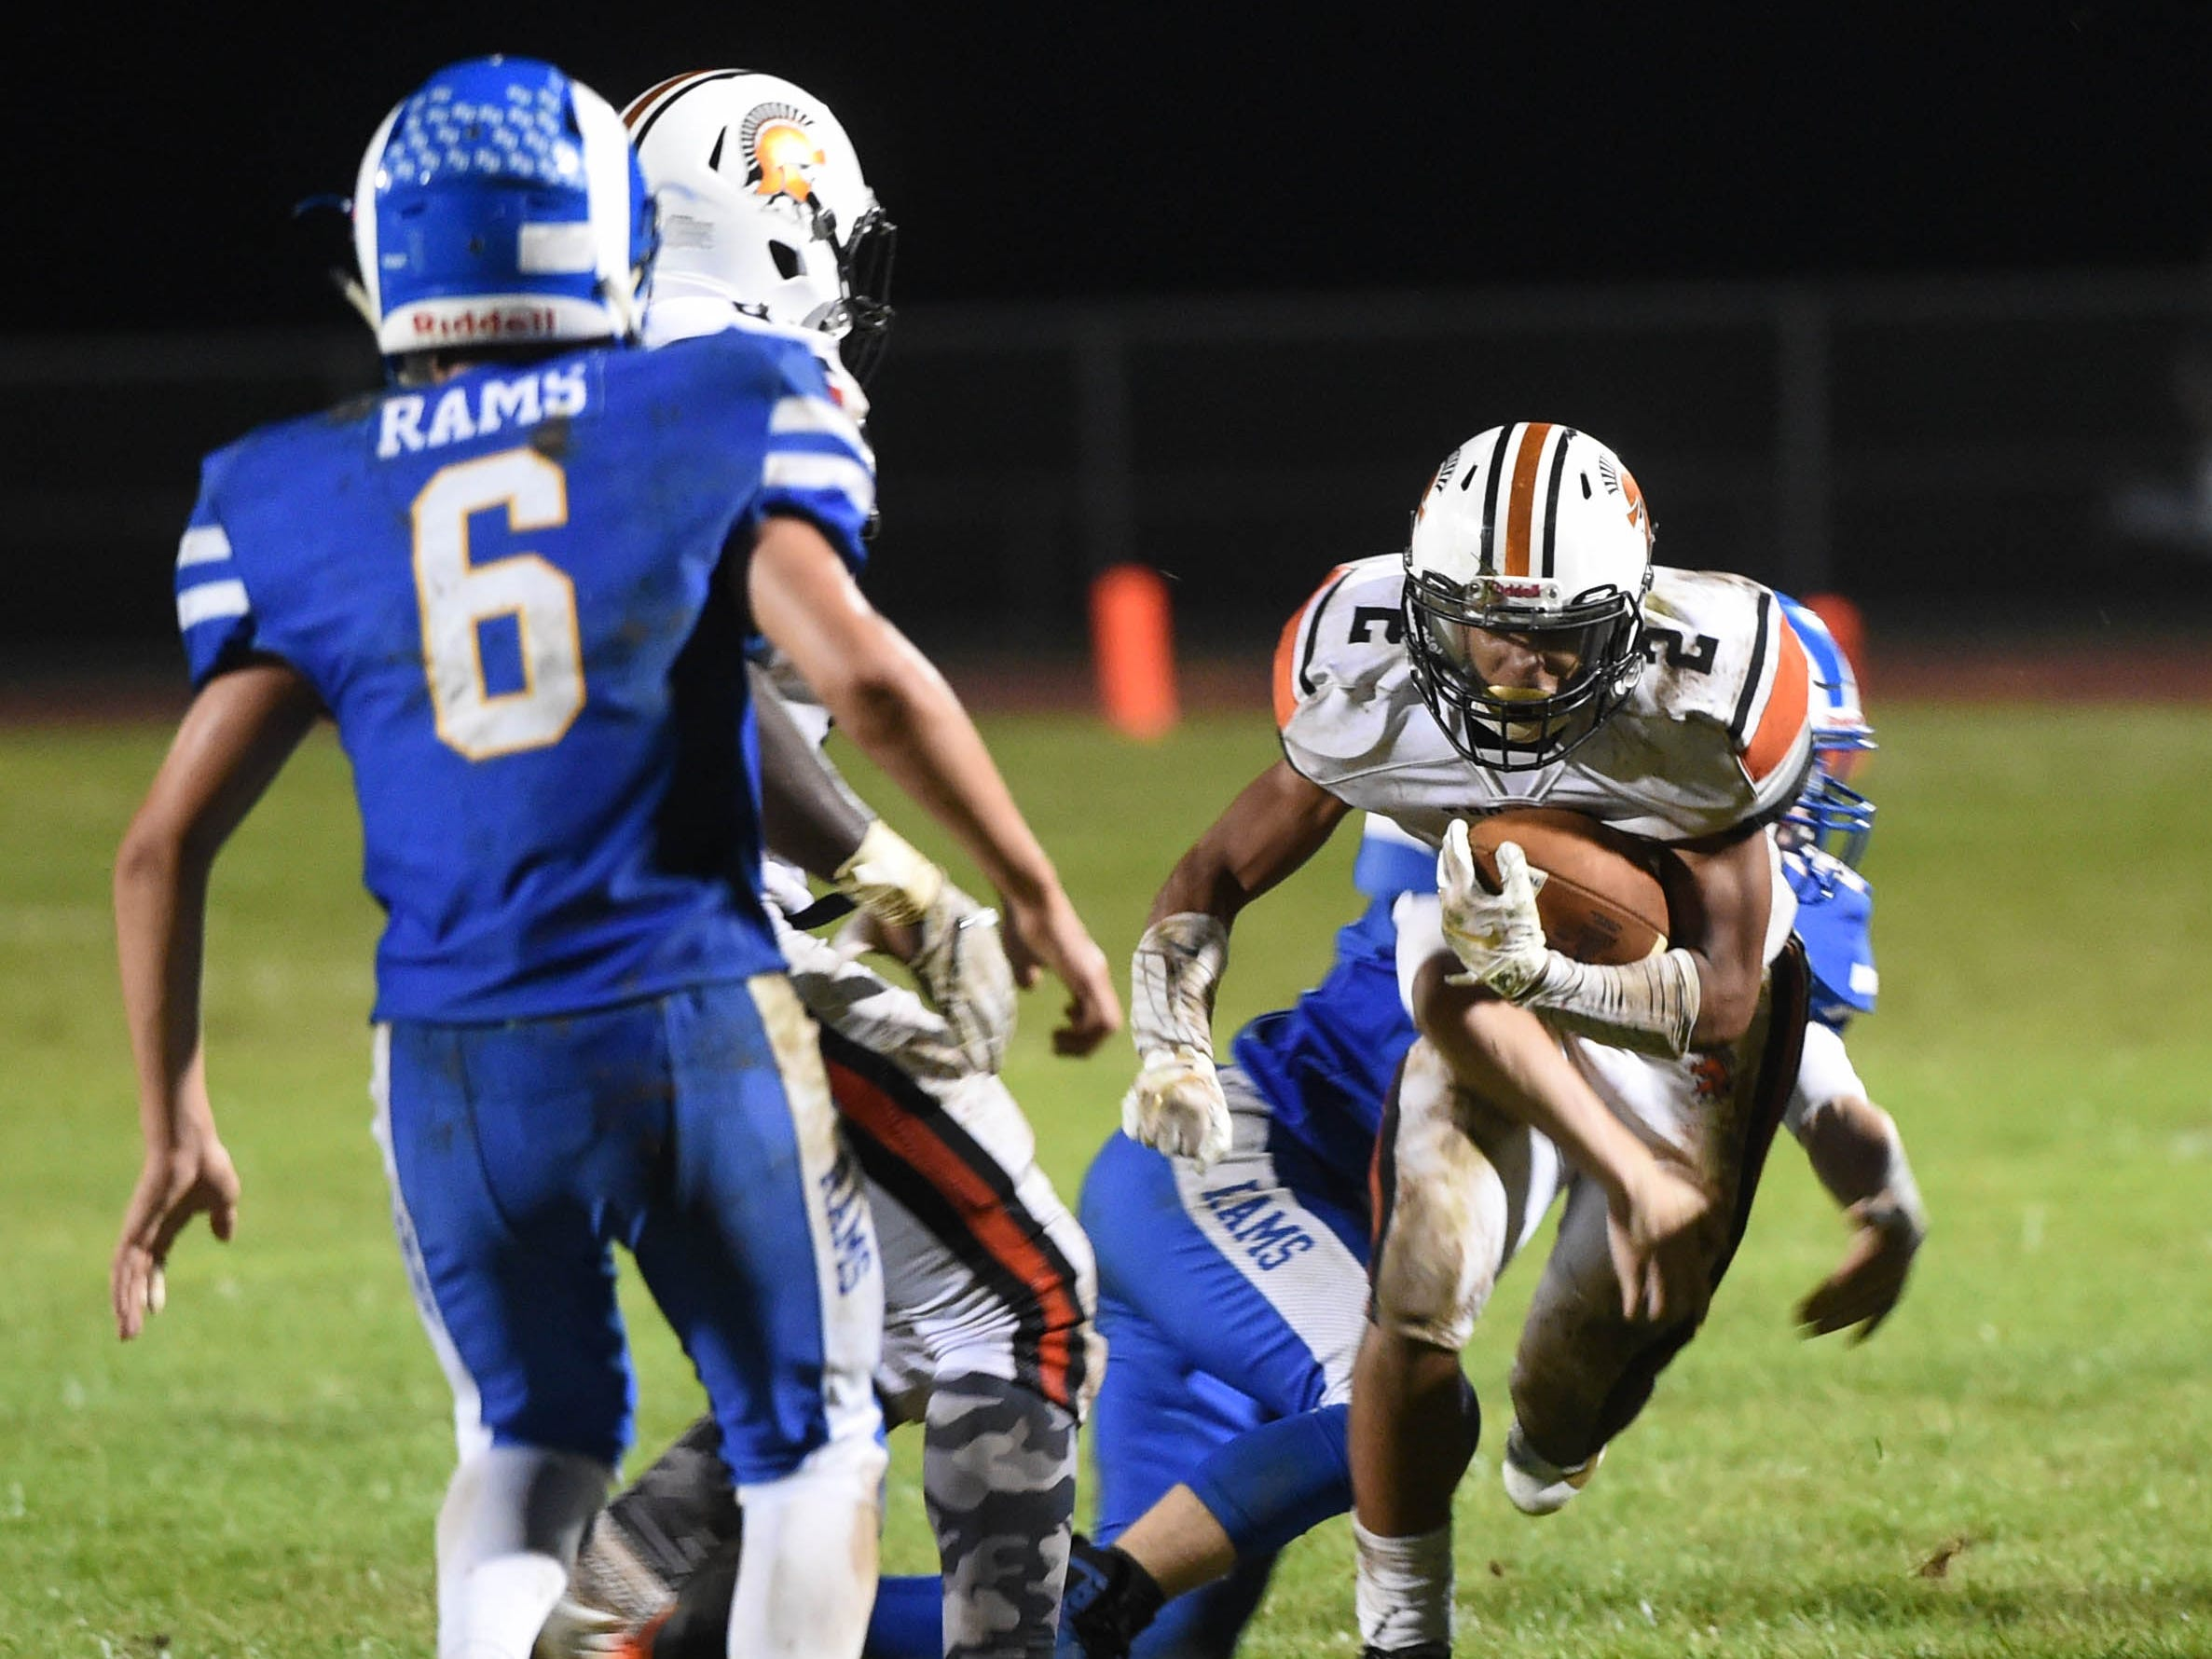 Savion Harrison (2) gets brought down during the Division II football game between Kennard-Dale and York Suburban, Friday, September 21, 2018. The York Suburban Trojans beat the Kennard-Dale Rams 31-25.